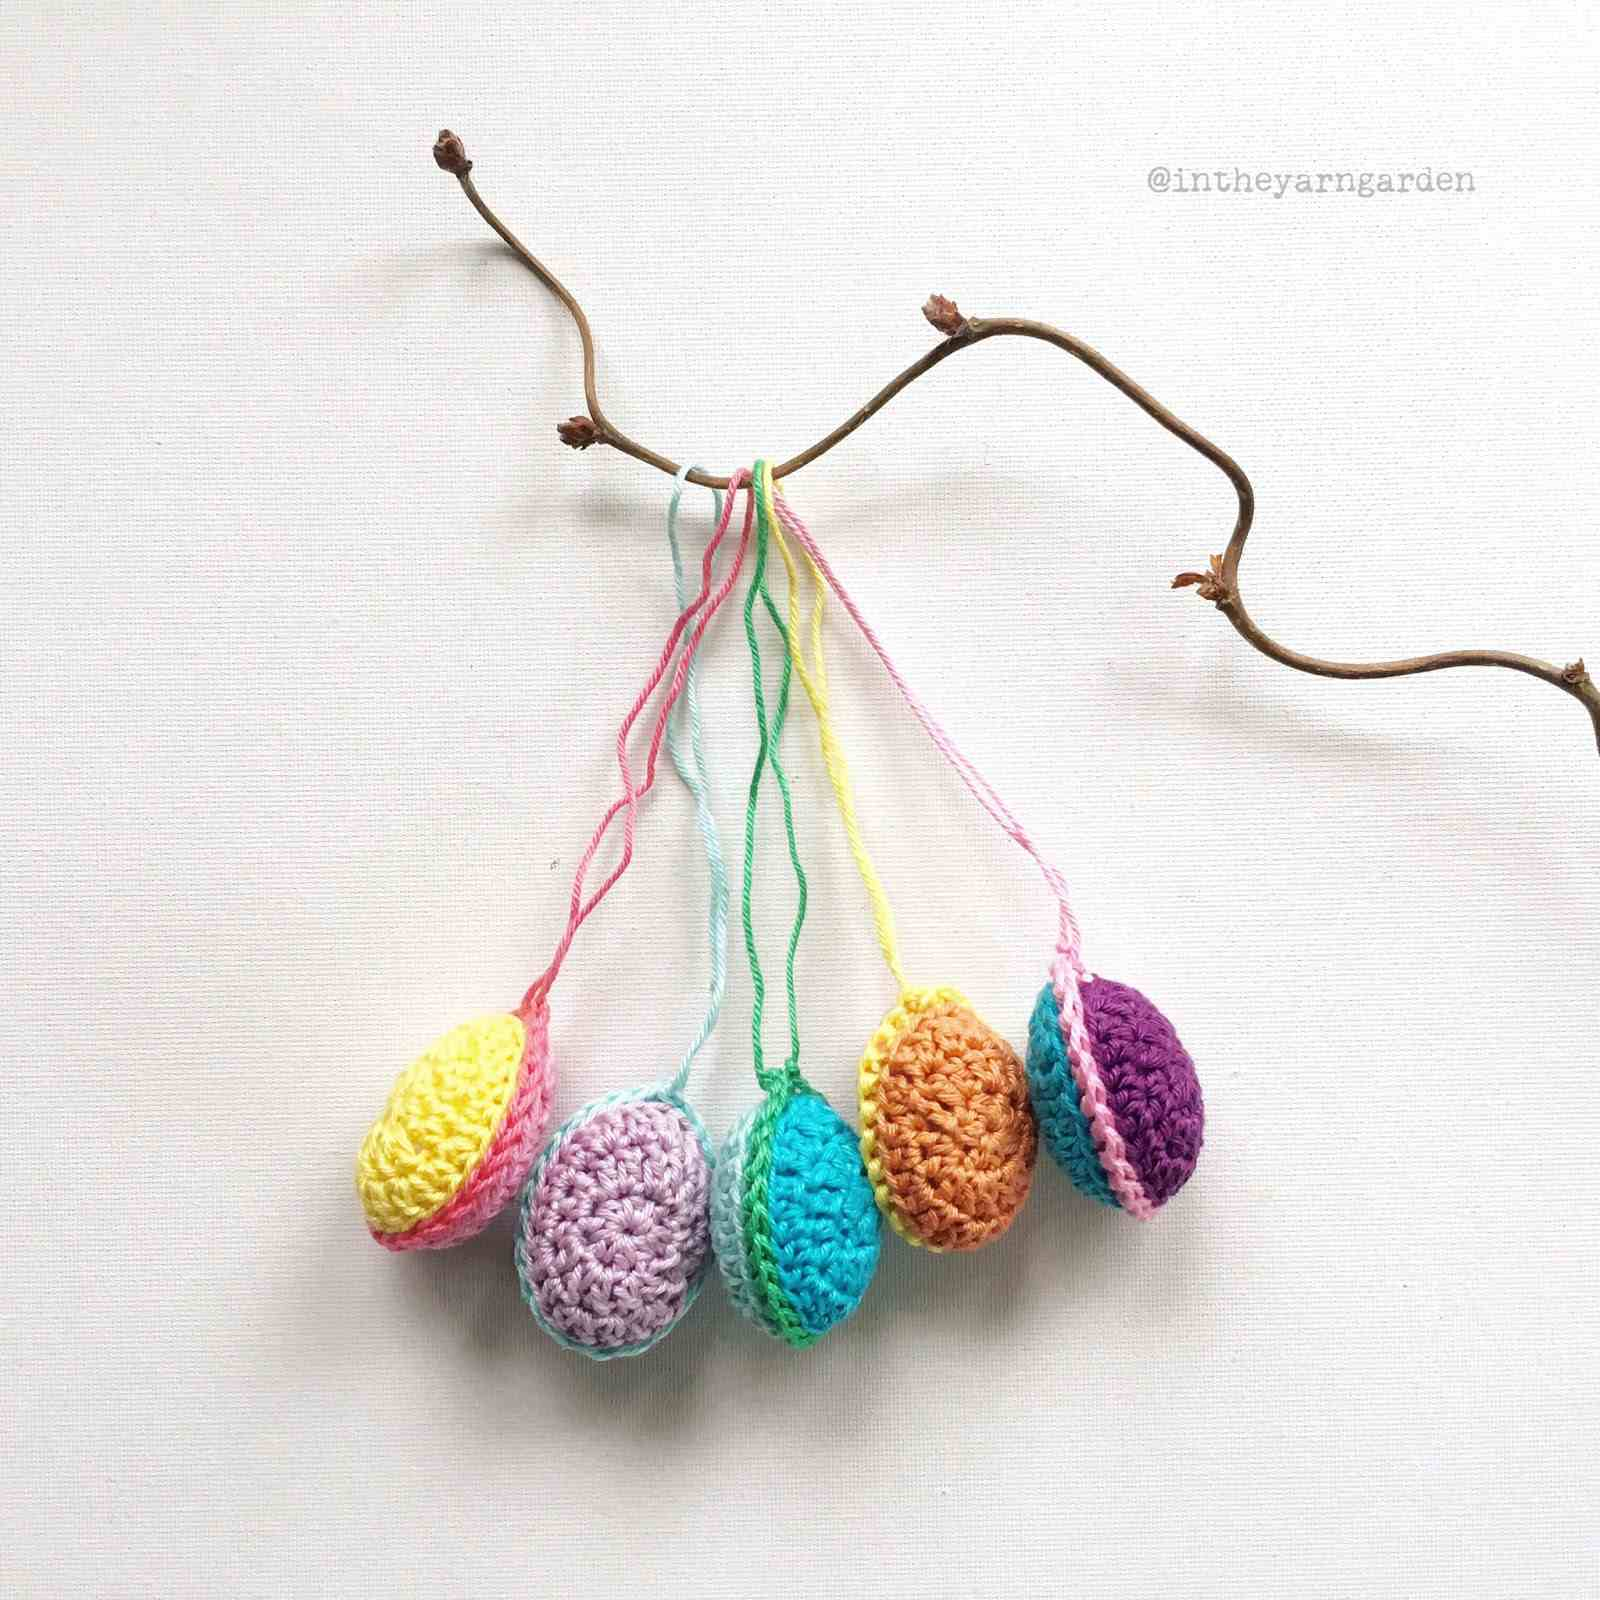 25 Easter Crochet Patterns